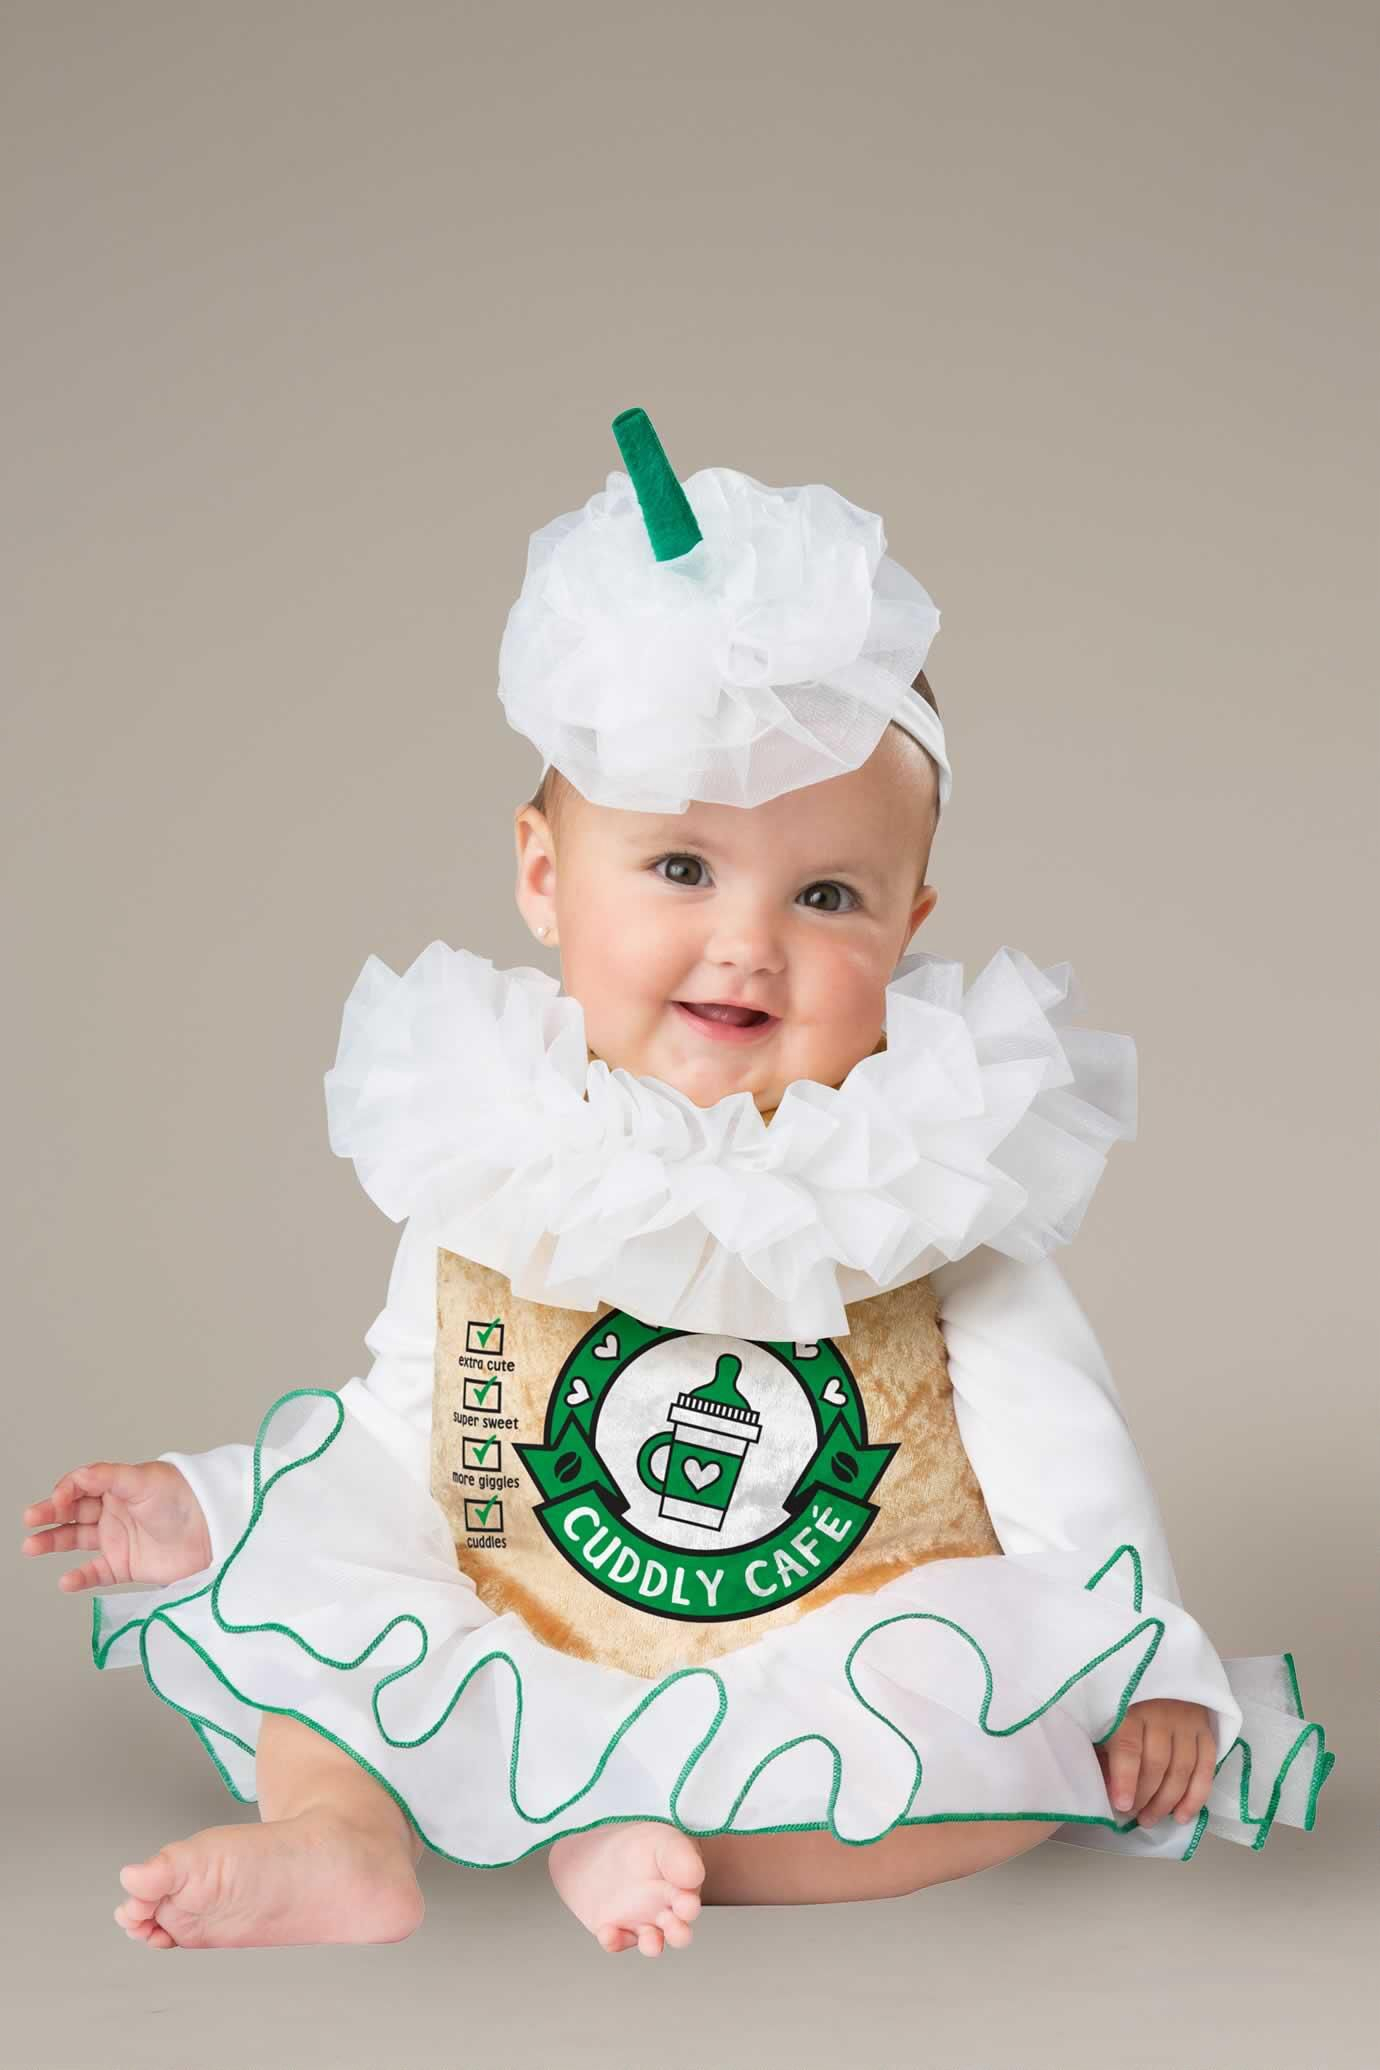 10 Wonderful Baby Costume Ideas For Girls 27 cute baby halloween costumes 2018 best ideas for boy girl 2020